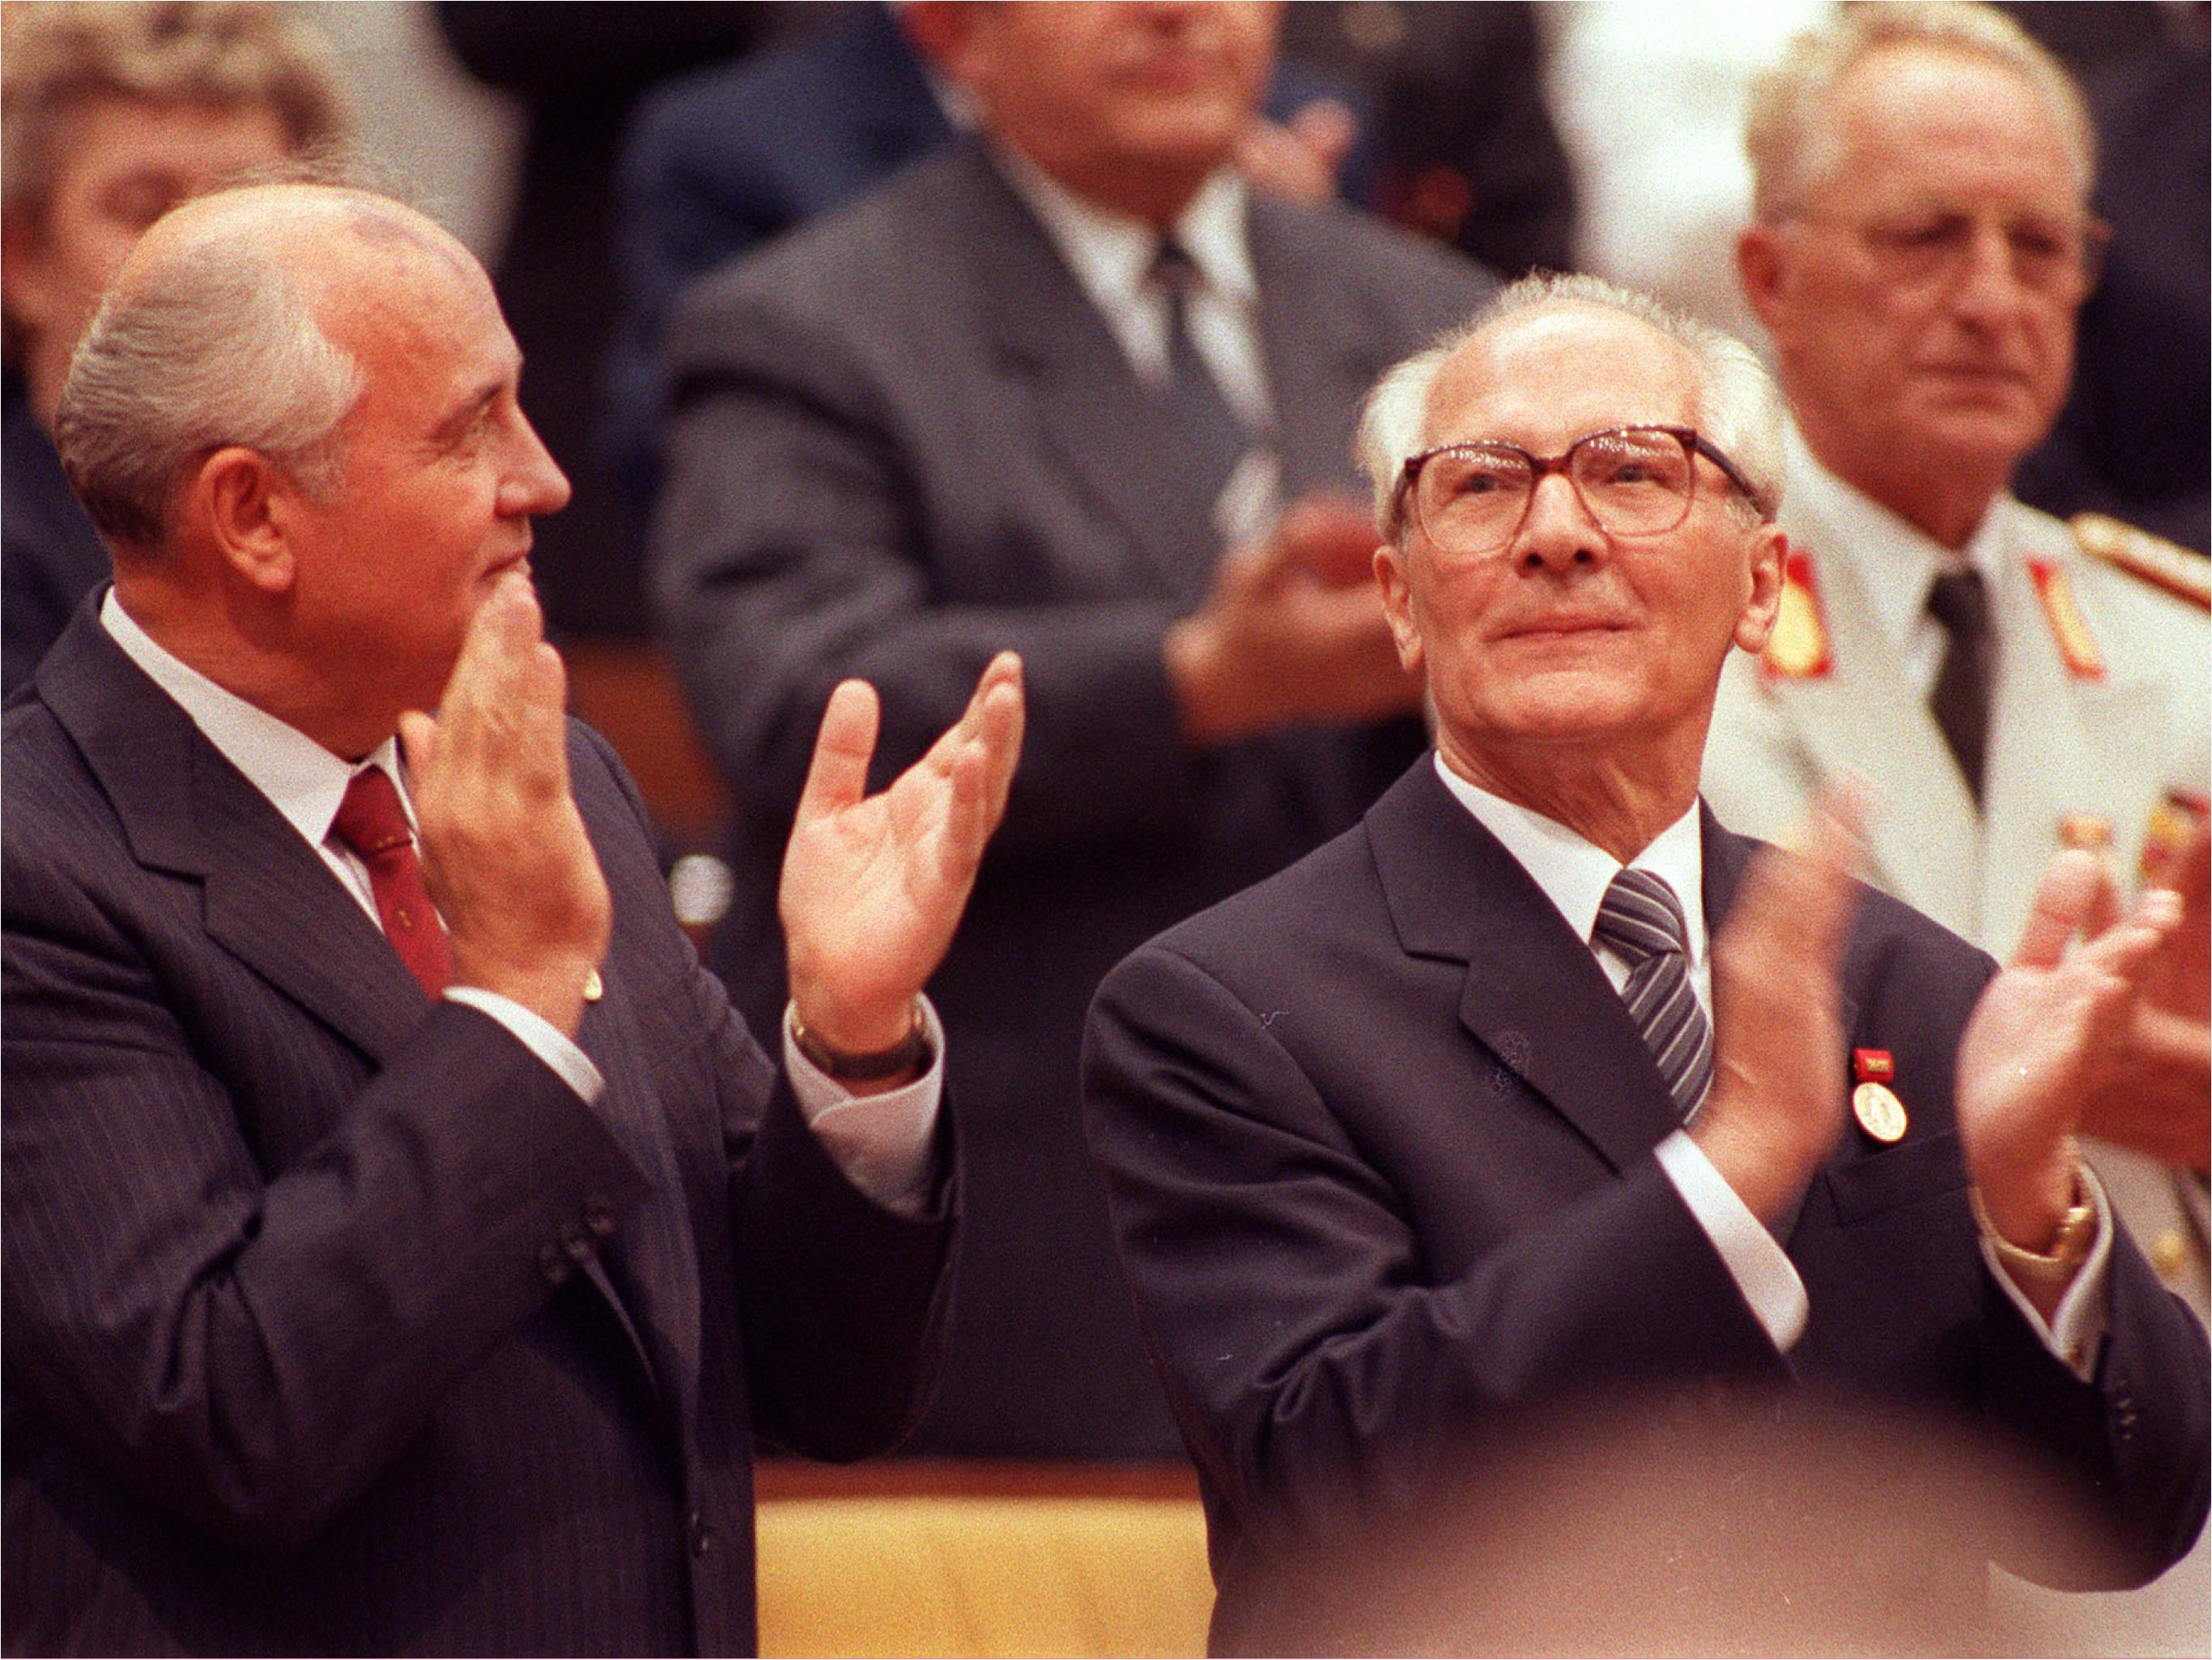 Soviet General Secretary Mikhail Gorbachev, left, and East German General Secretary Erich Honecker